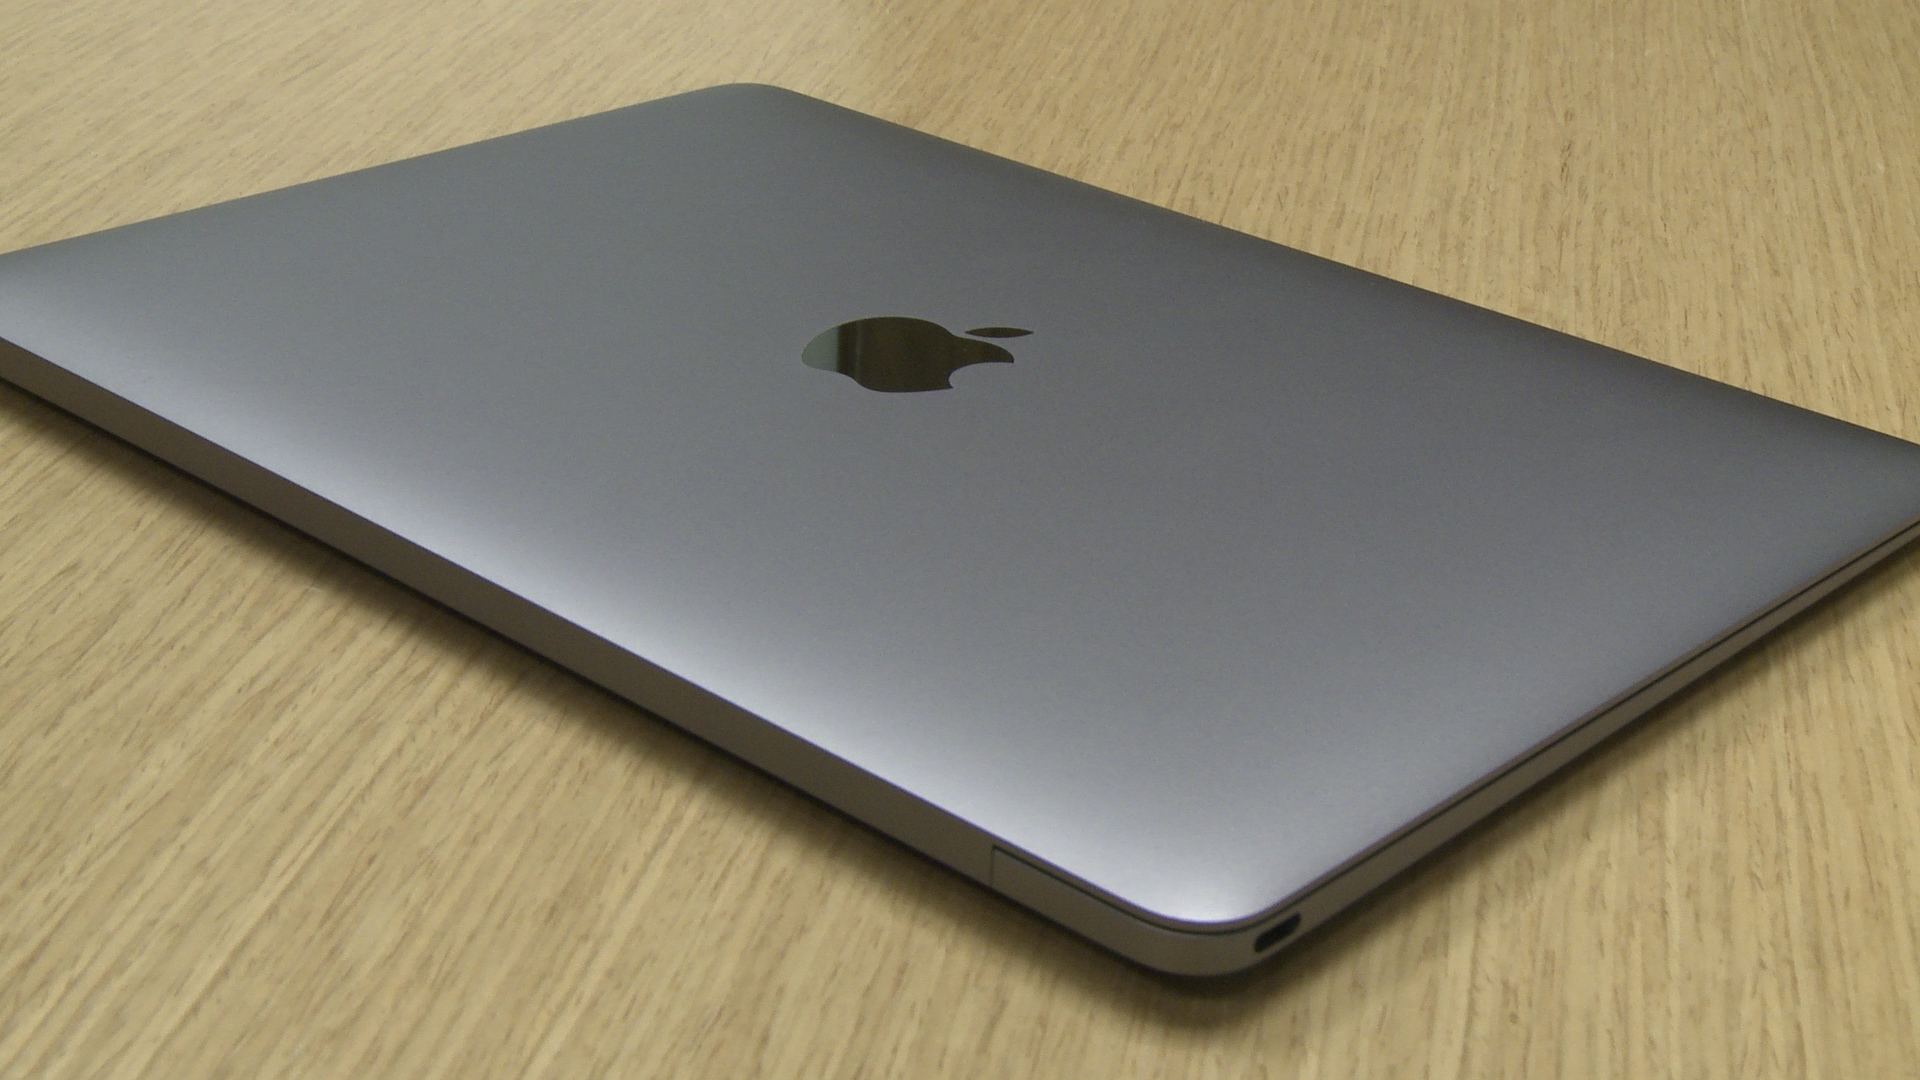 Apple, Cupertino, MacBook, MacBook Air, Tech, technology, News, NewsMobile, Mobile News, India